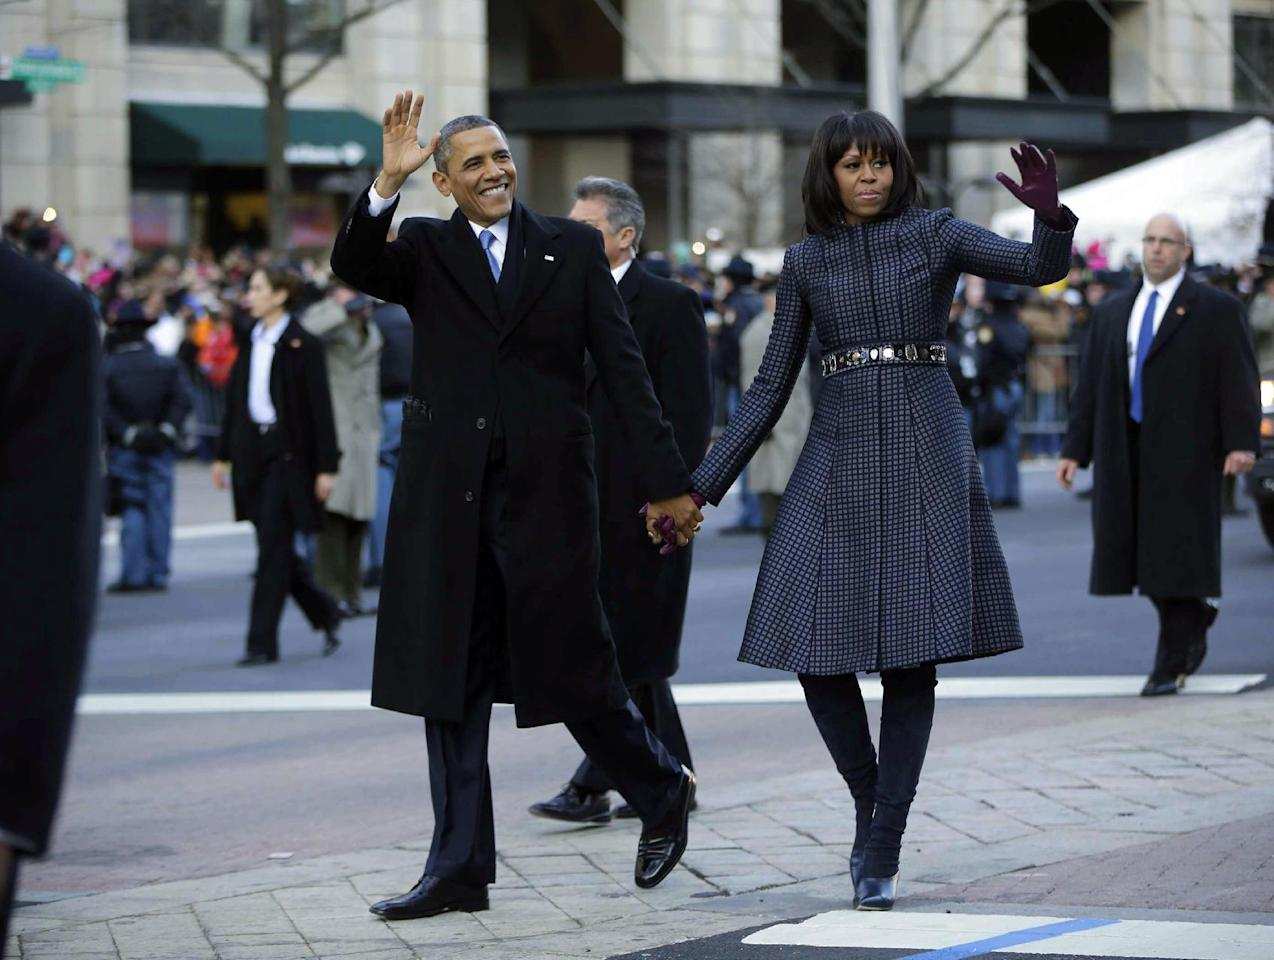 President Barack Obama and first lady Michelle Obama walk down Pennsylvania Avenue during the 57th Presidential Inauguration parade Monday, Jan. 21, 2013, in Washington. (AP Photo/Charles Dharapak)